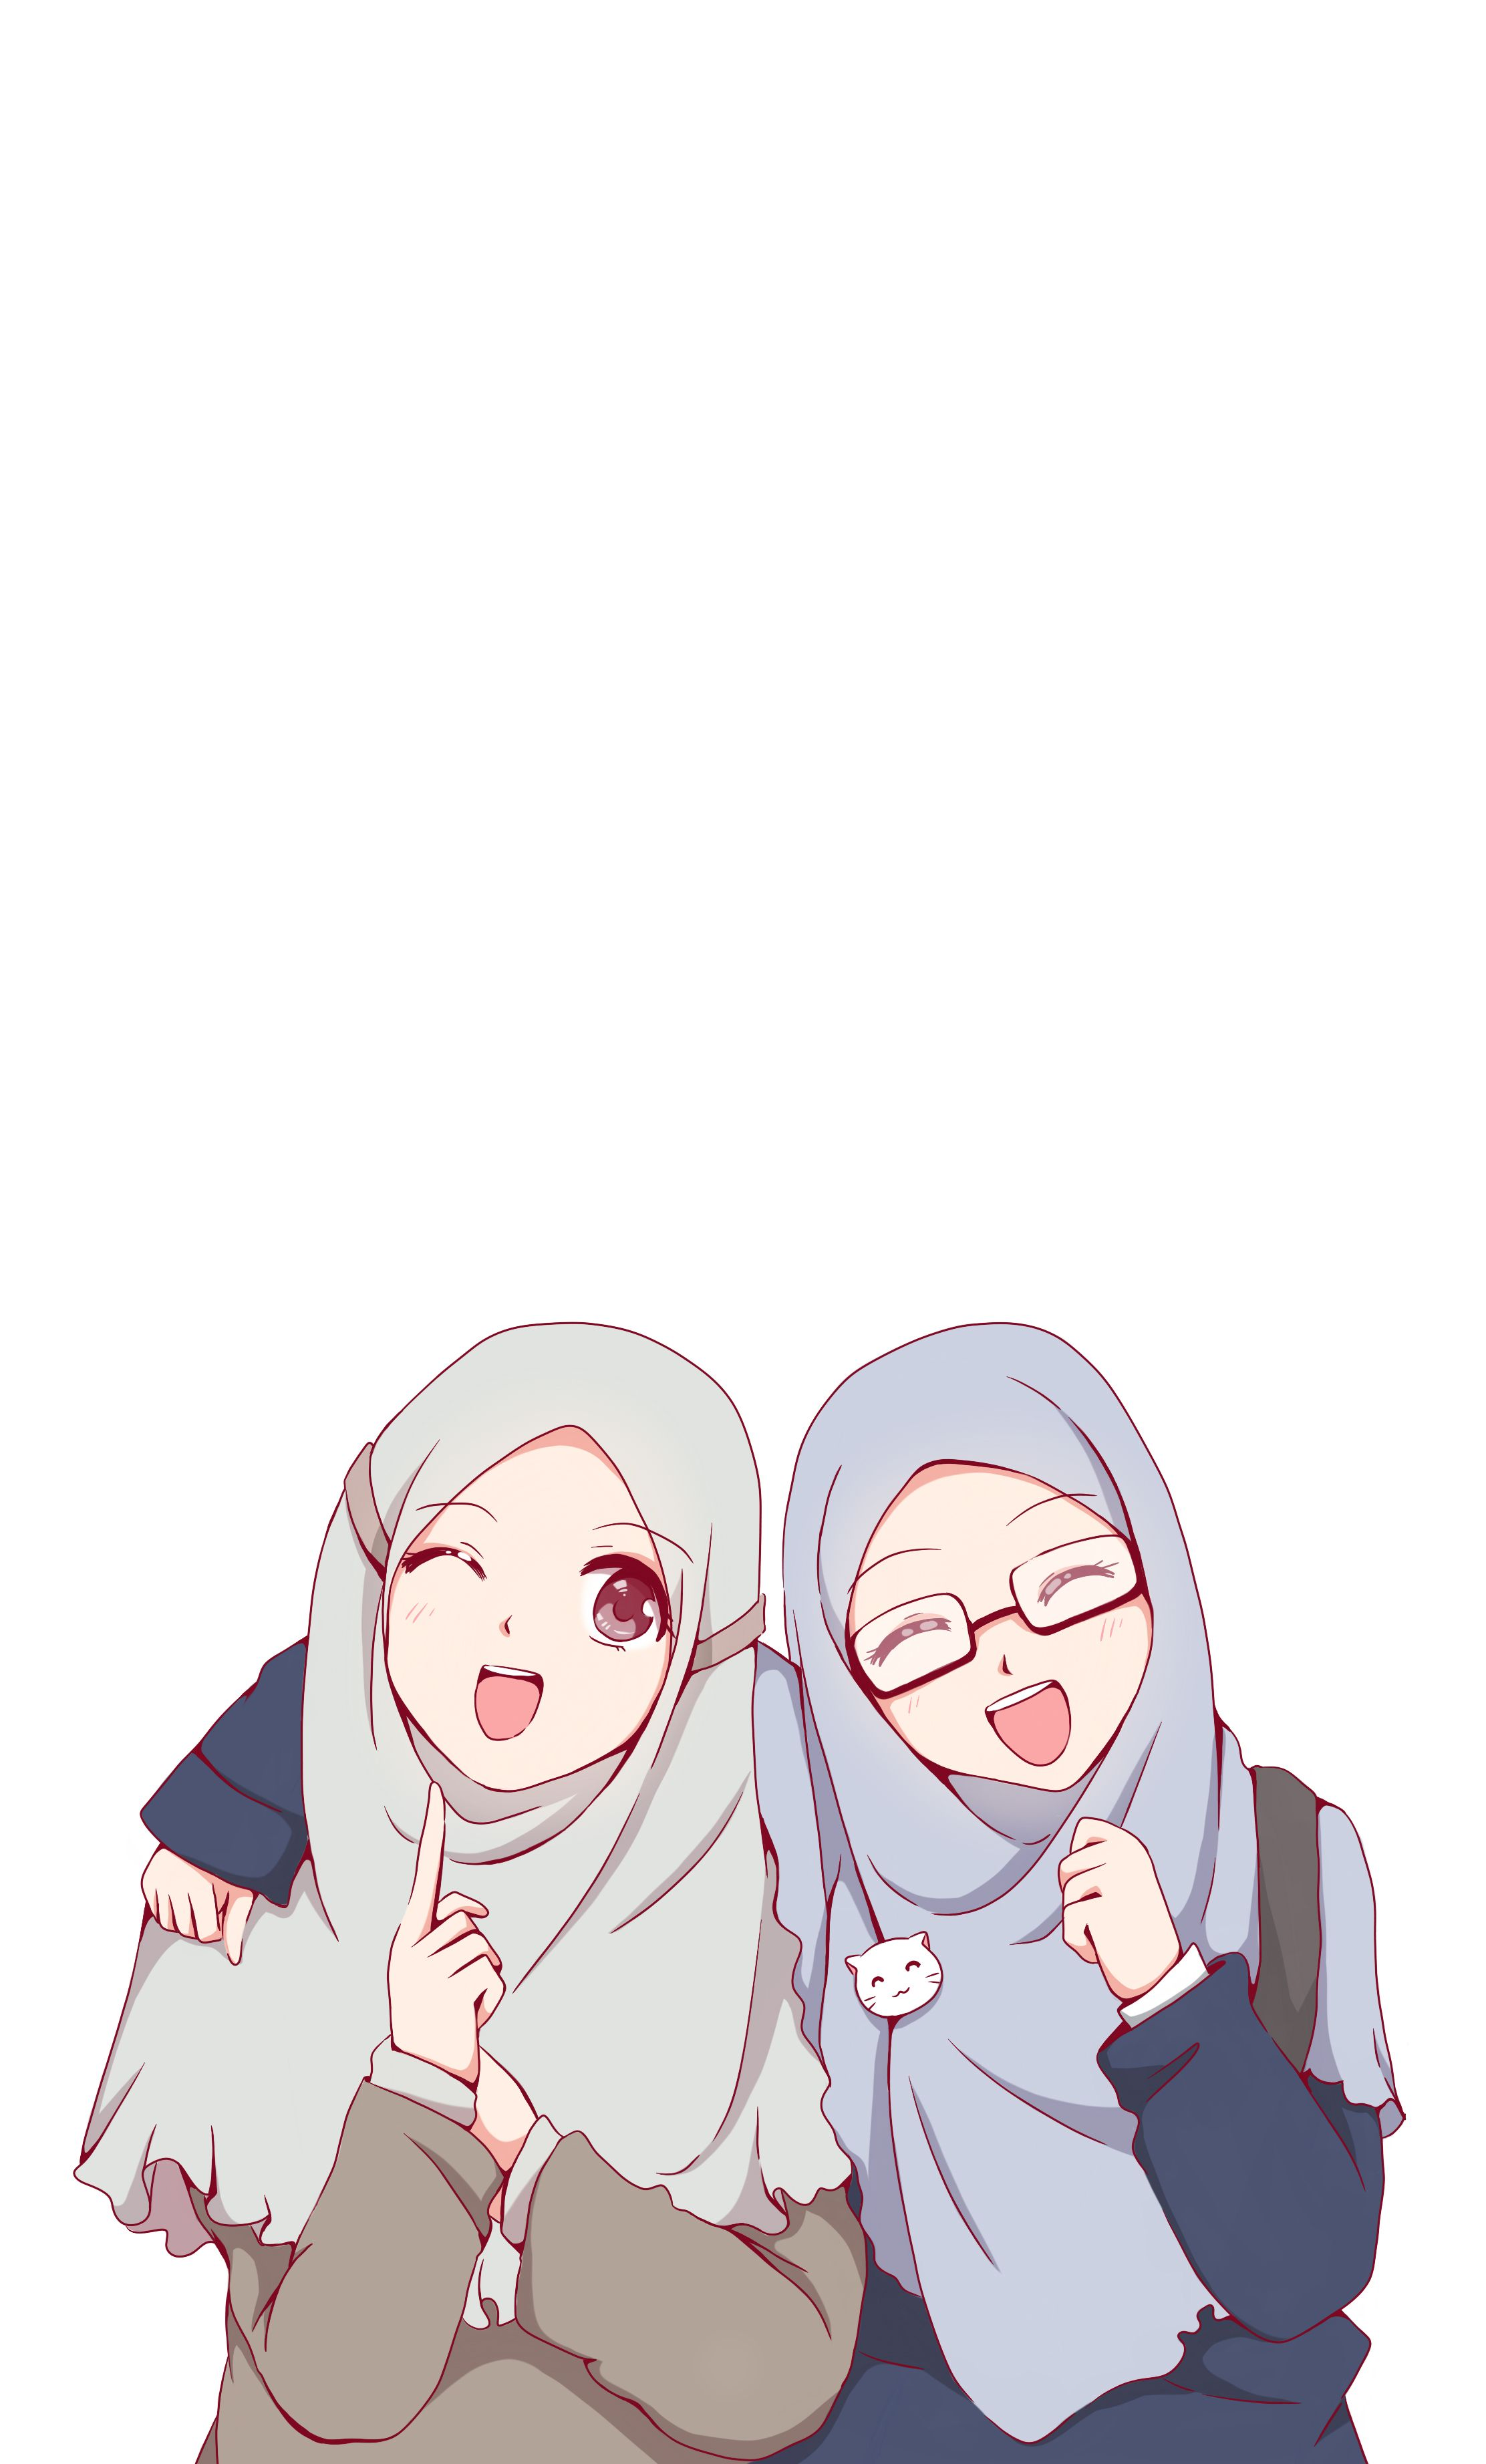 Beautiful Pretty Cute Friendship Islamic Cartoon Anime Muslimah Anime Muslim